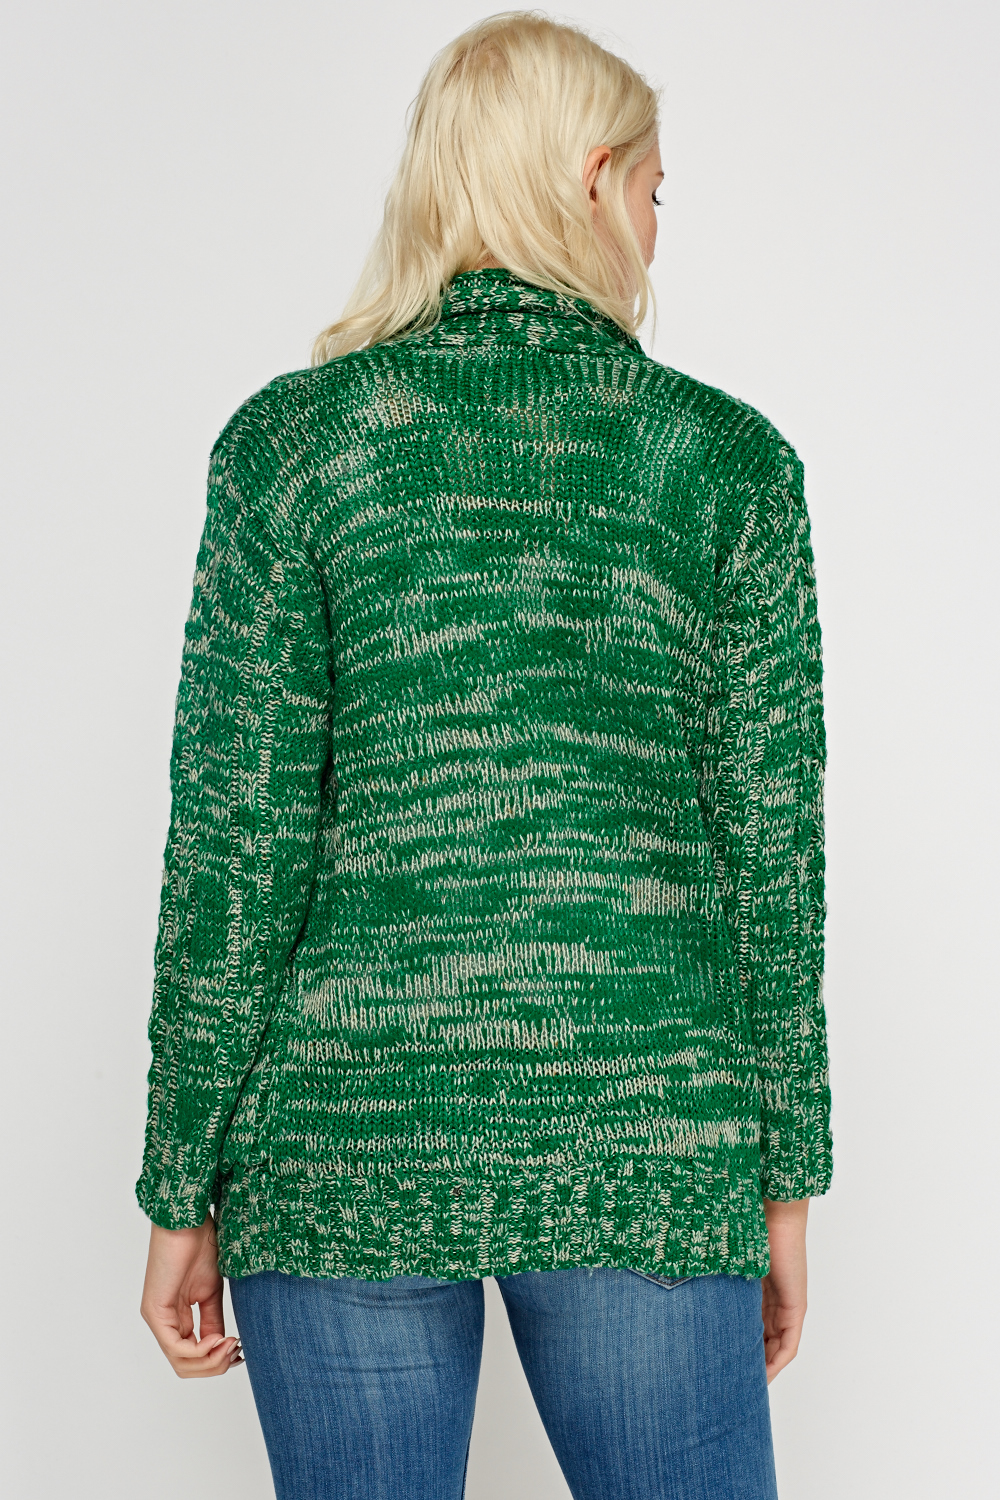 Loose Cable Knit Cardigan - Just £5